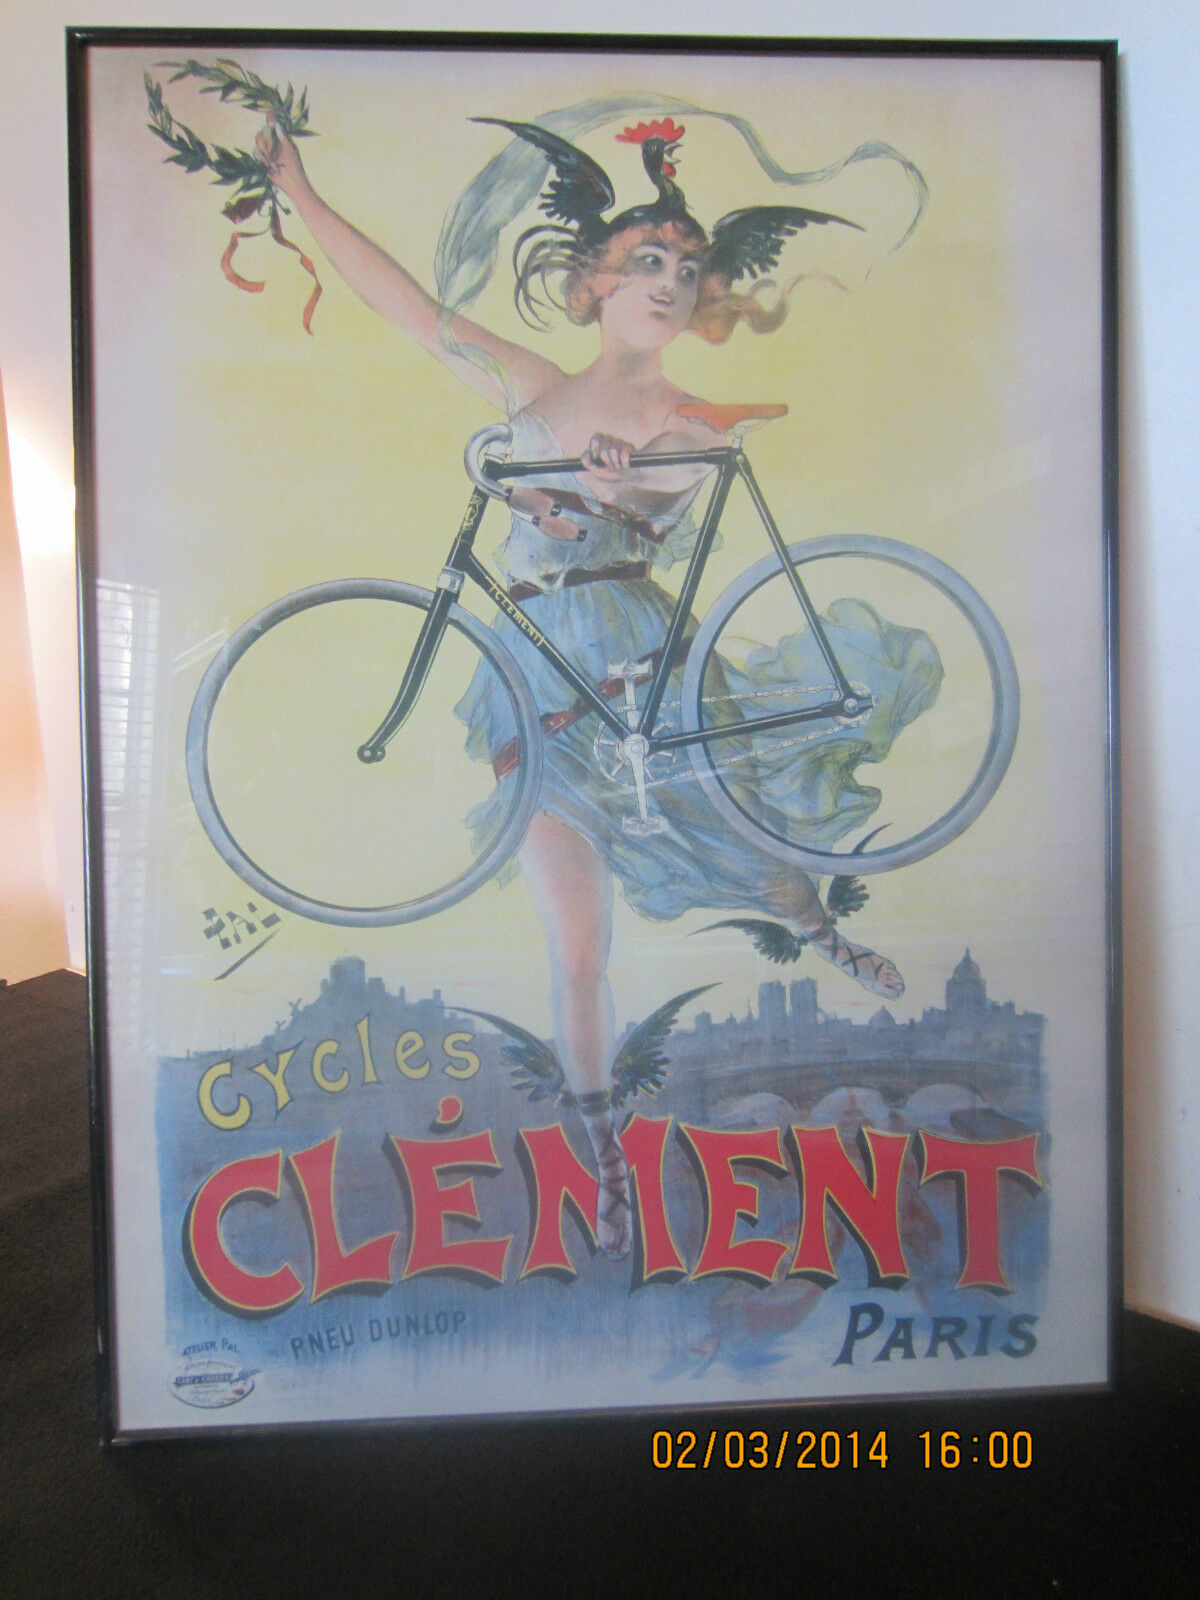 FRENCH CYCLING  CLEMENT, PARIS  FRAMED POSTER